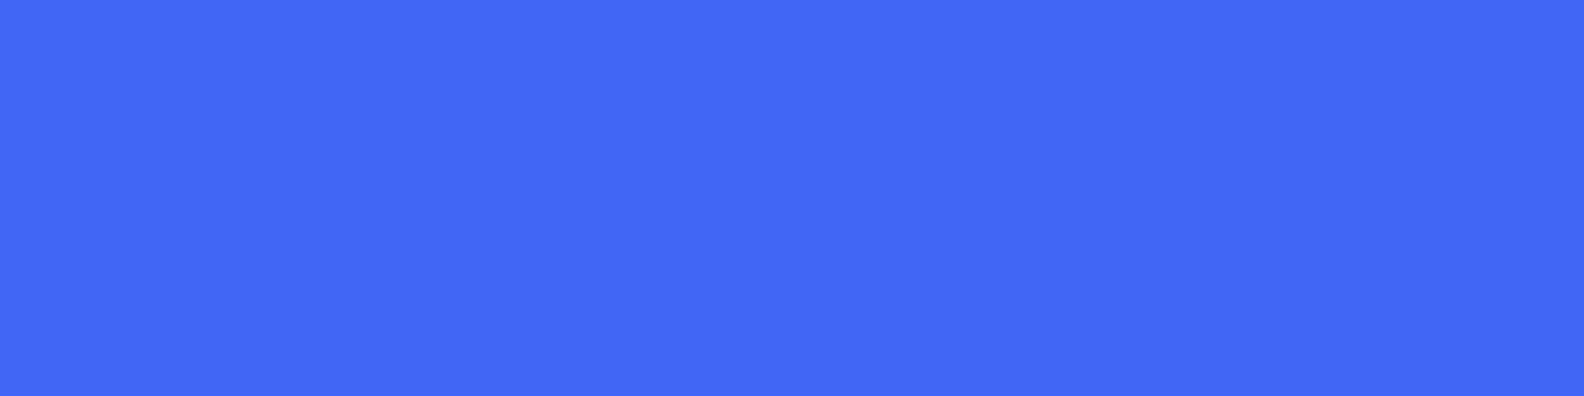 1584x396 Ultramarine Blue Solid Color Background